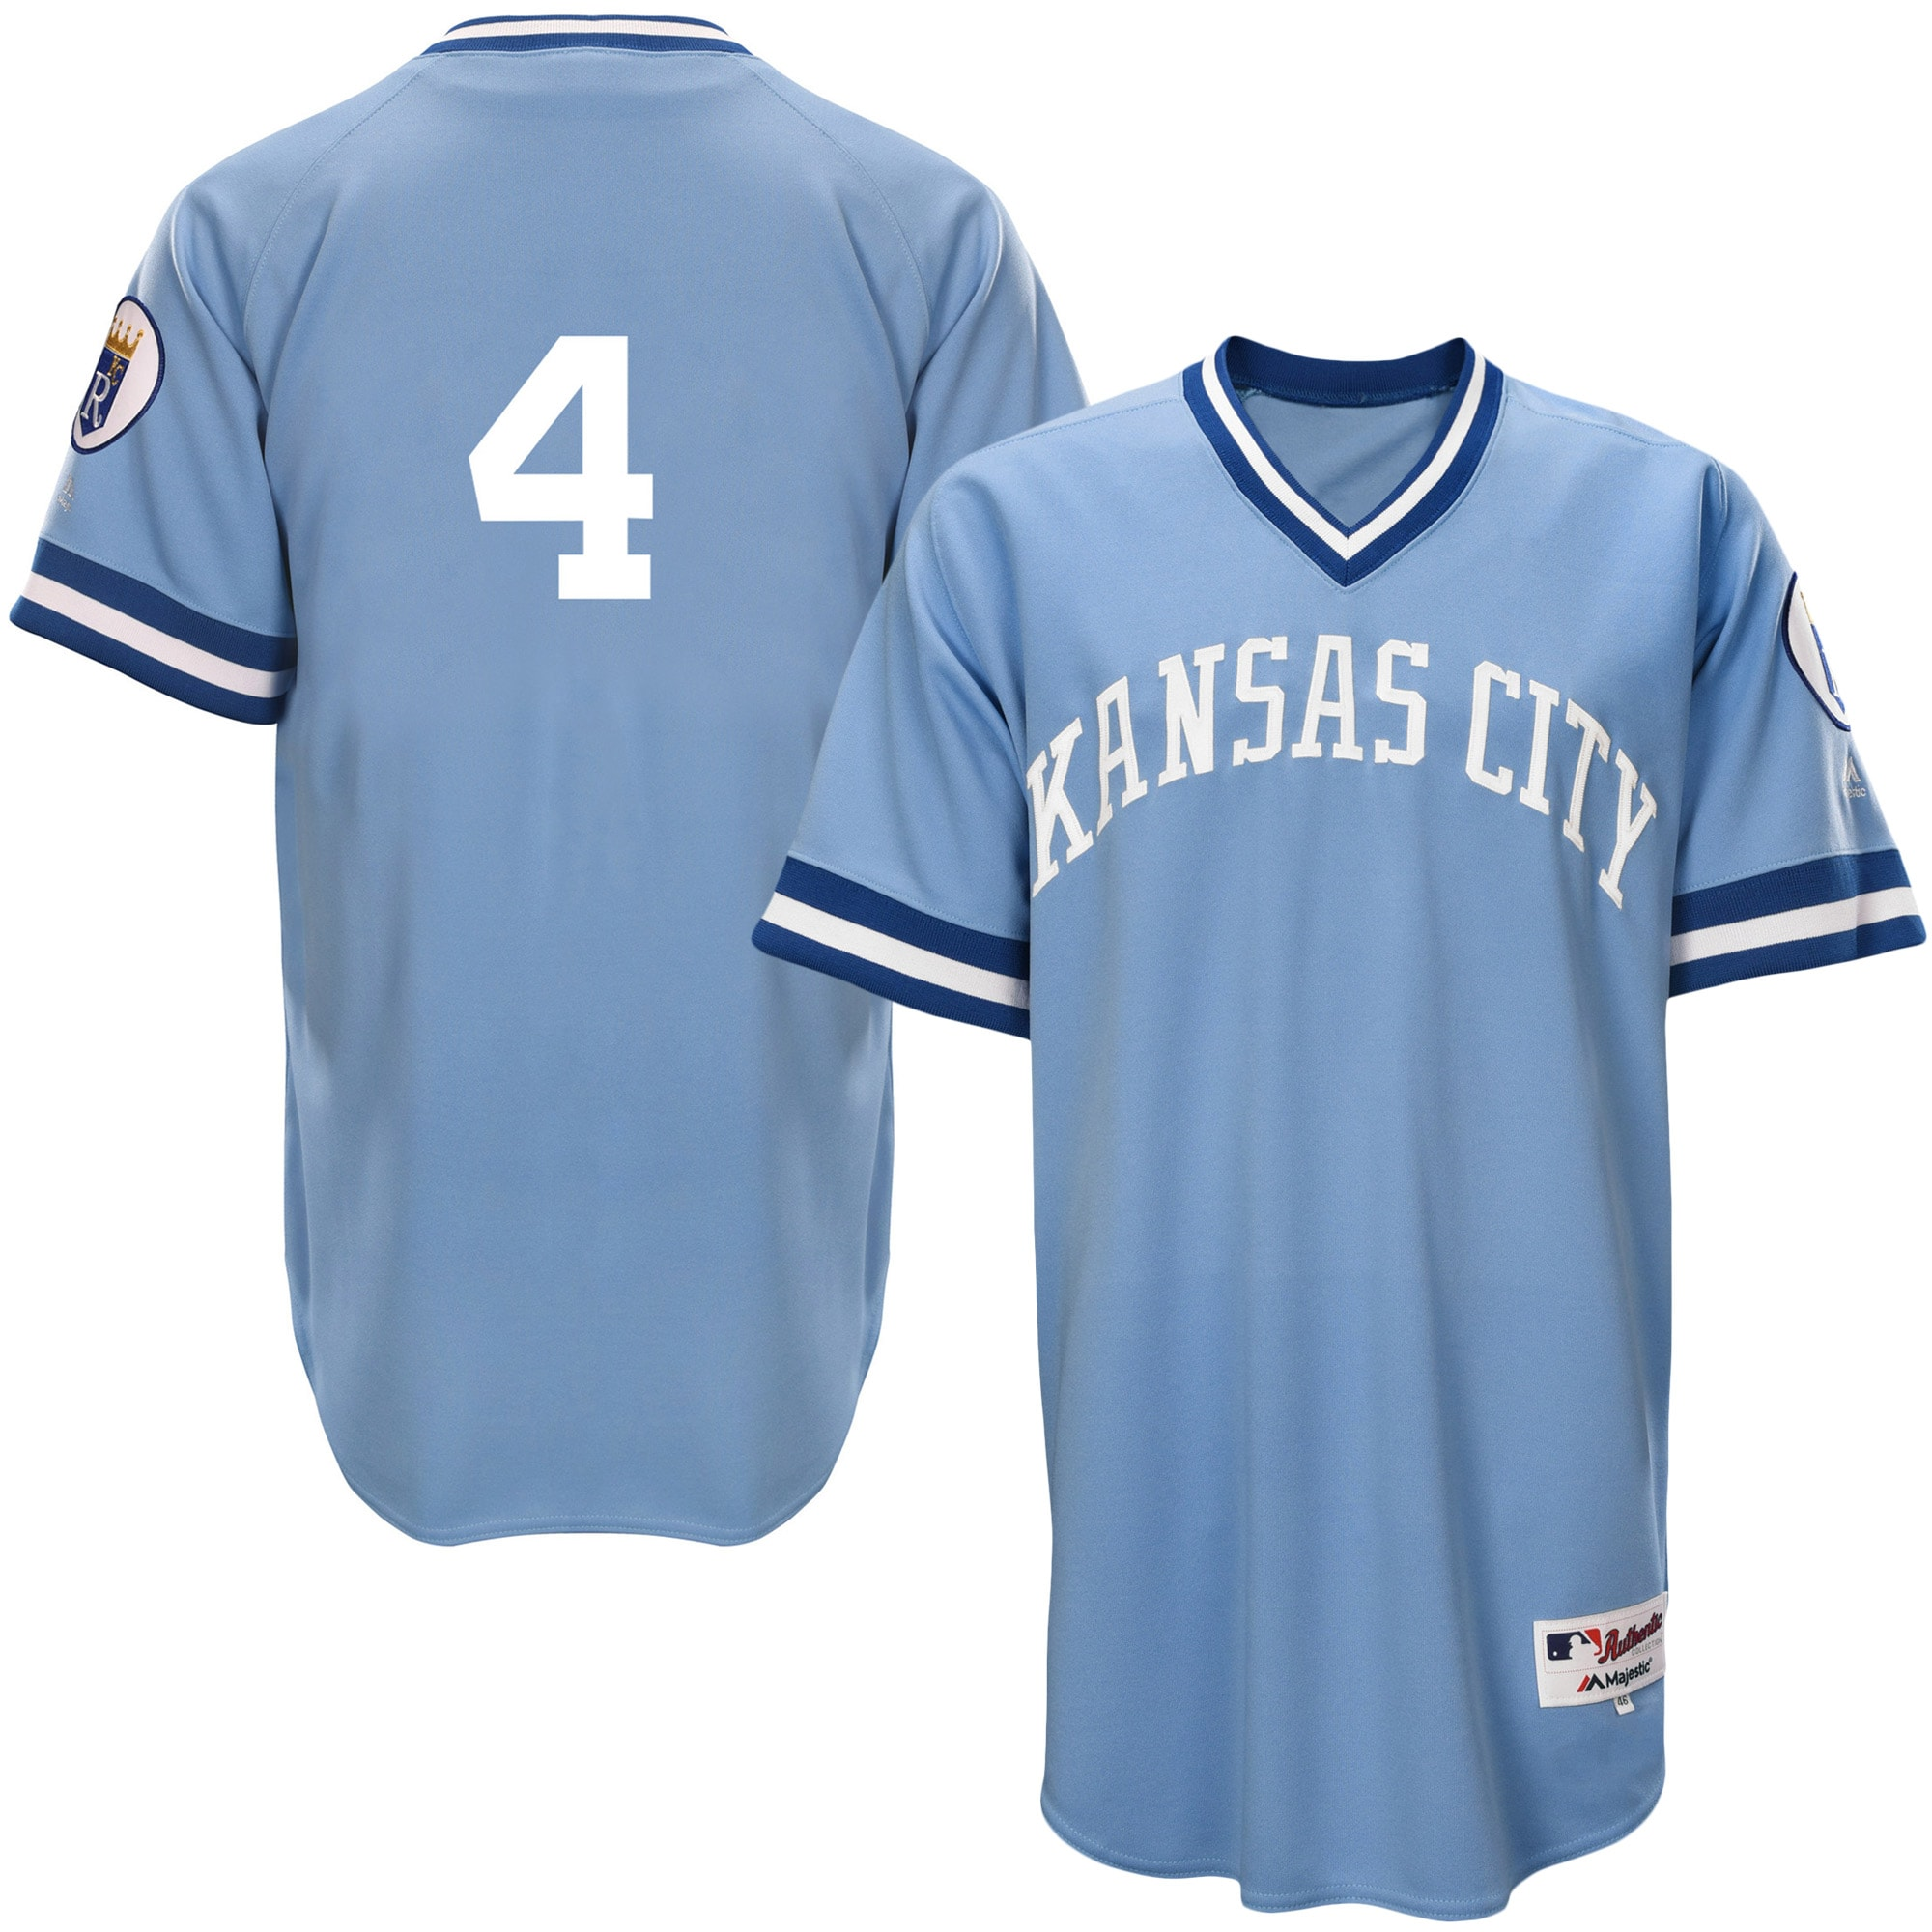 Alex Gordon Kansas City Royals Majestic Authentic 1976 Turn Back the Clock Player Jersey - Light Blue